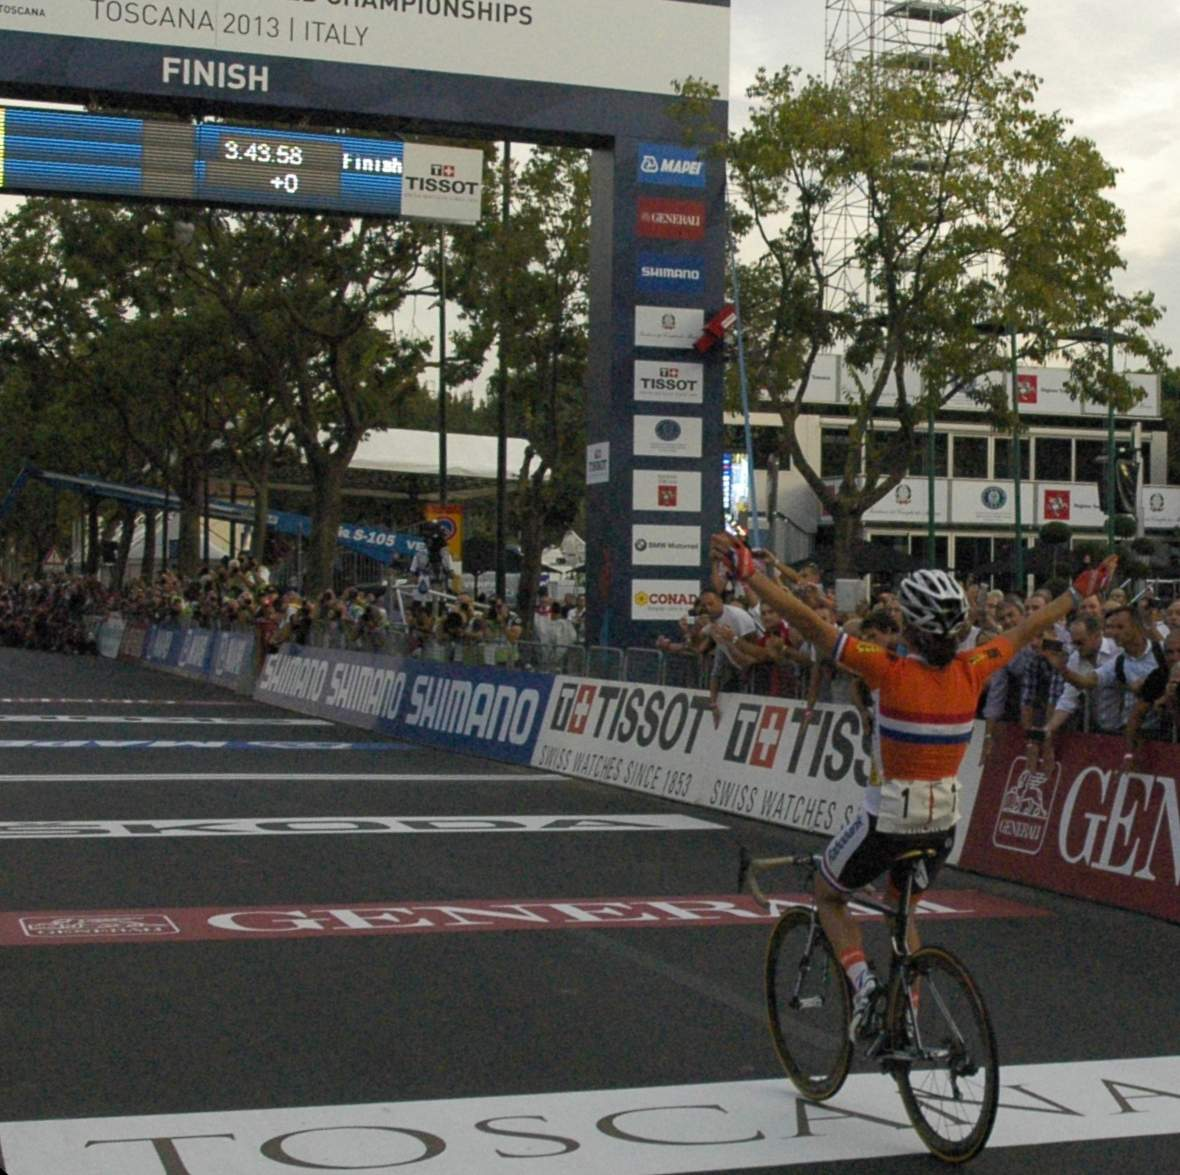 https://i0.wp.com/upload.wikimedia.org/wikipedia/commons/8/89/Marianne_Vos_winning_the_women%27s_road_race_at_the_2013_UCI_Road_World_Championships_%283%29.jpg